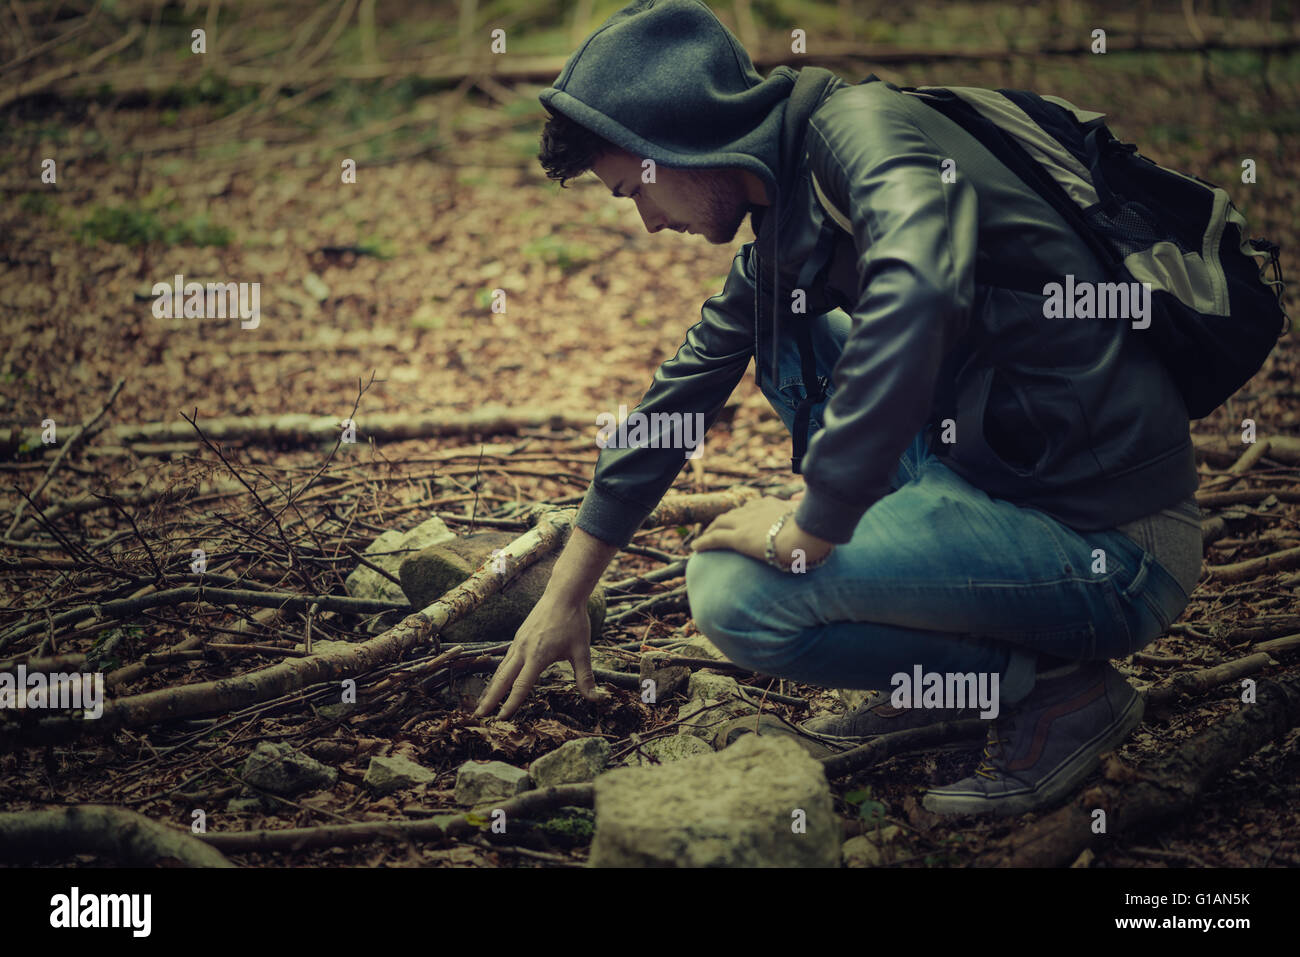 Man in the forest exploring and searching for tracks, adventure and freedom concept - Stock Image